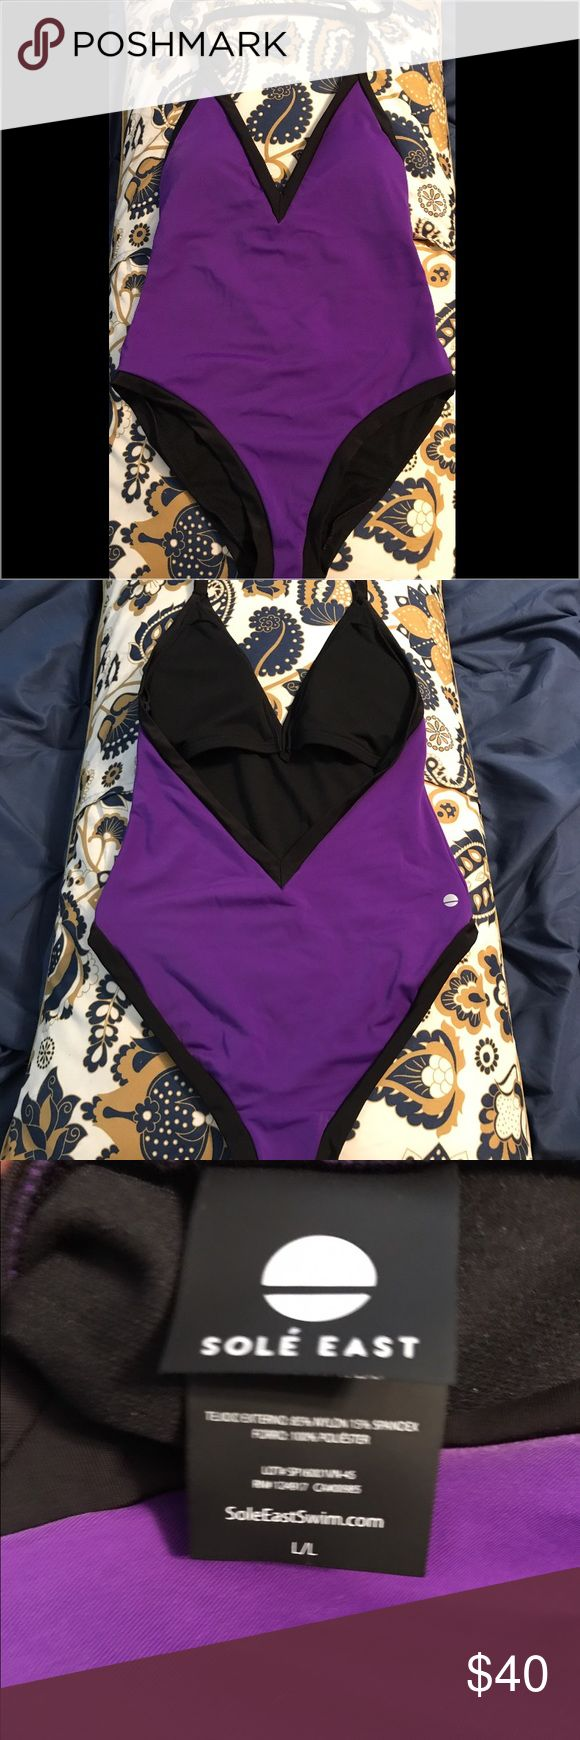 Purple one-piece swimsuit Super cute Sole East one-piece. Just selling because I have too many suits. Worn once and is in EUC. sole east Swim One Pieces